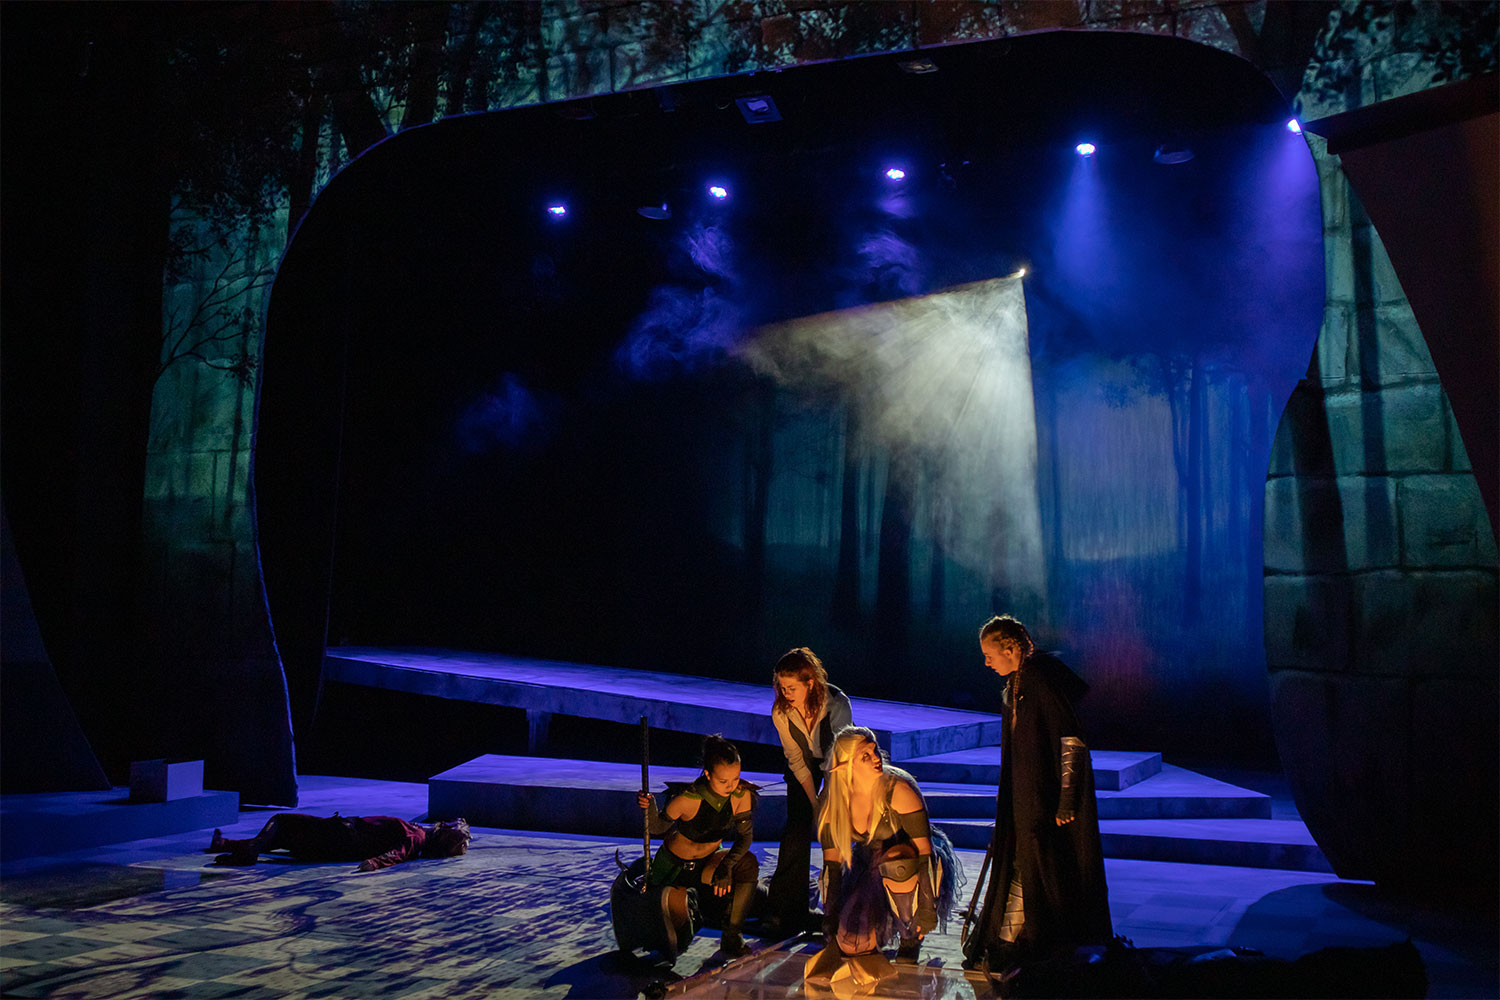 Scene 2 – Enchanted Forest